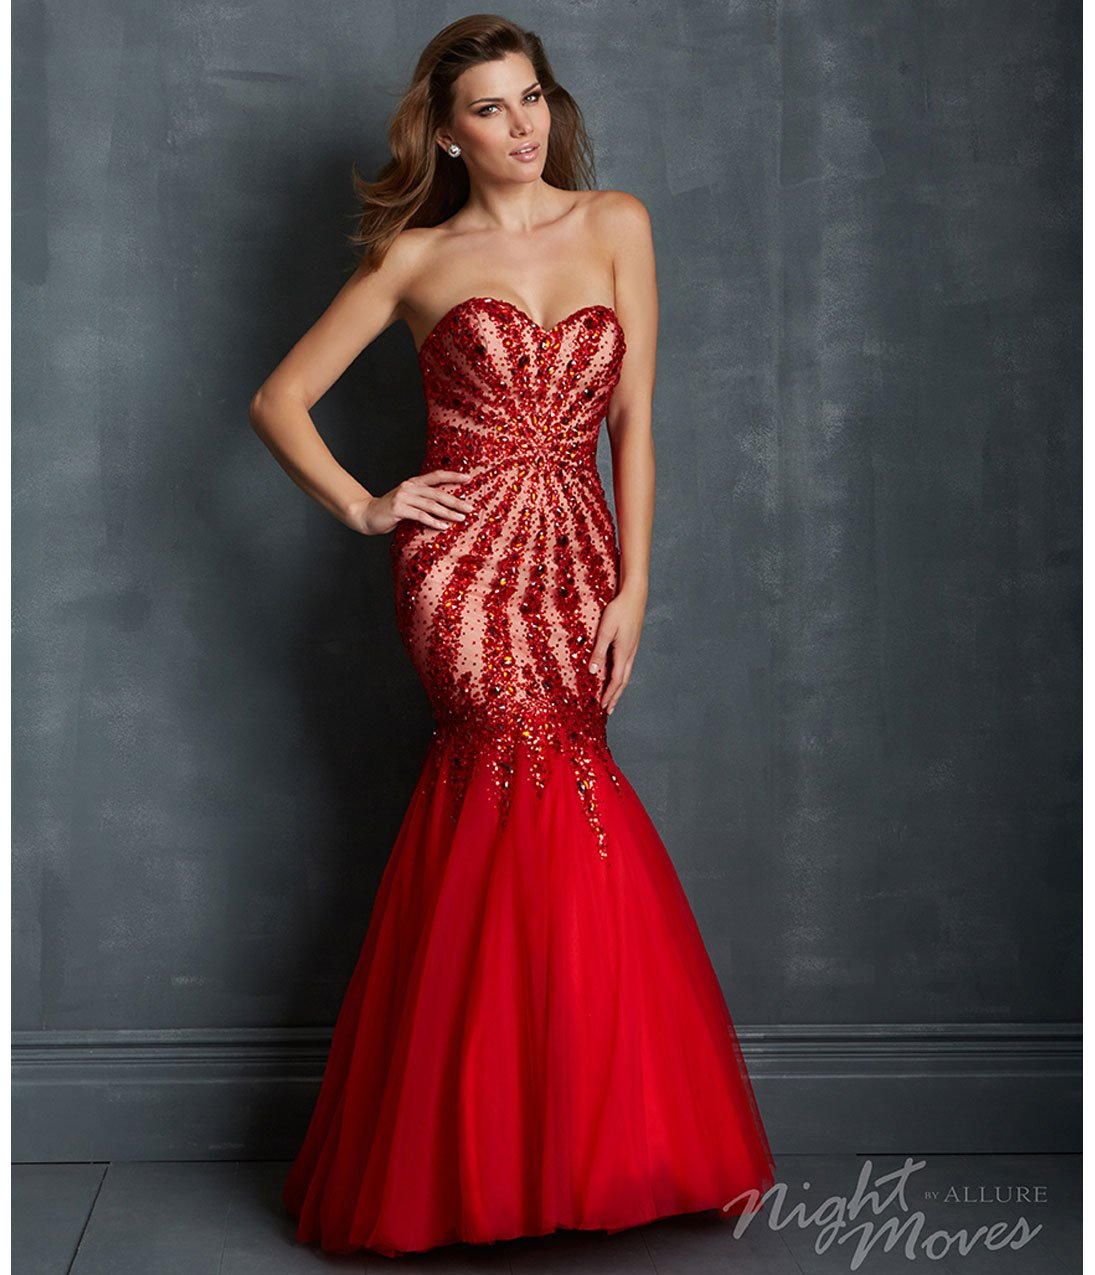 Red Mermaid Prom Dresses Tumblr - Holiday Dresses